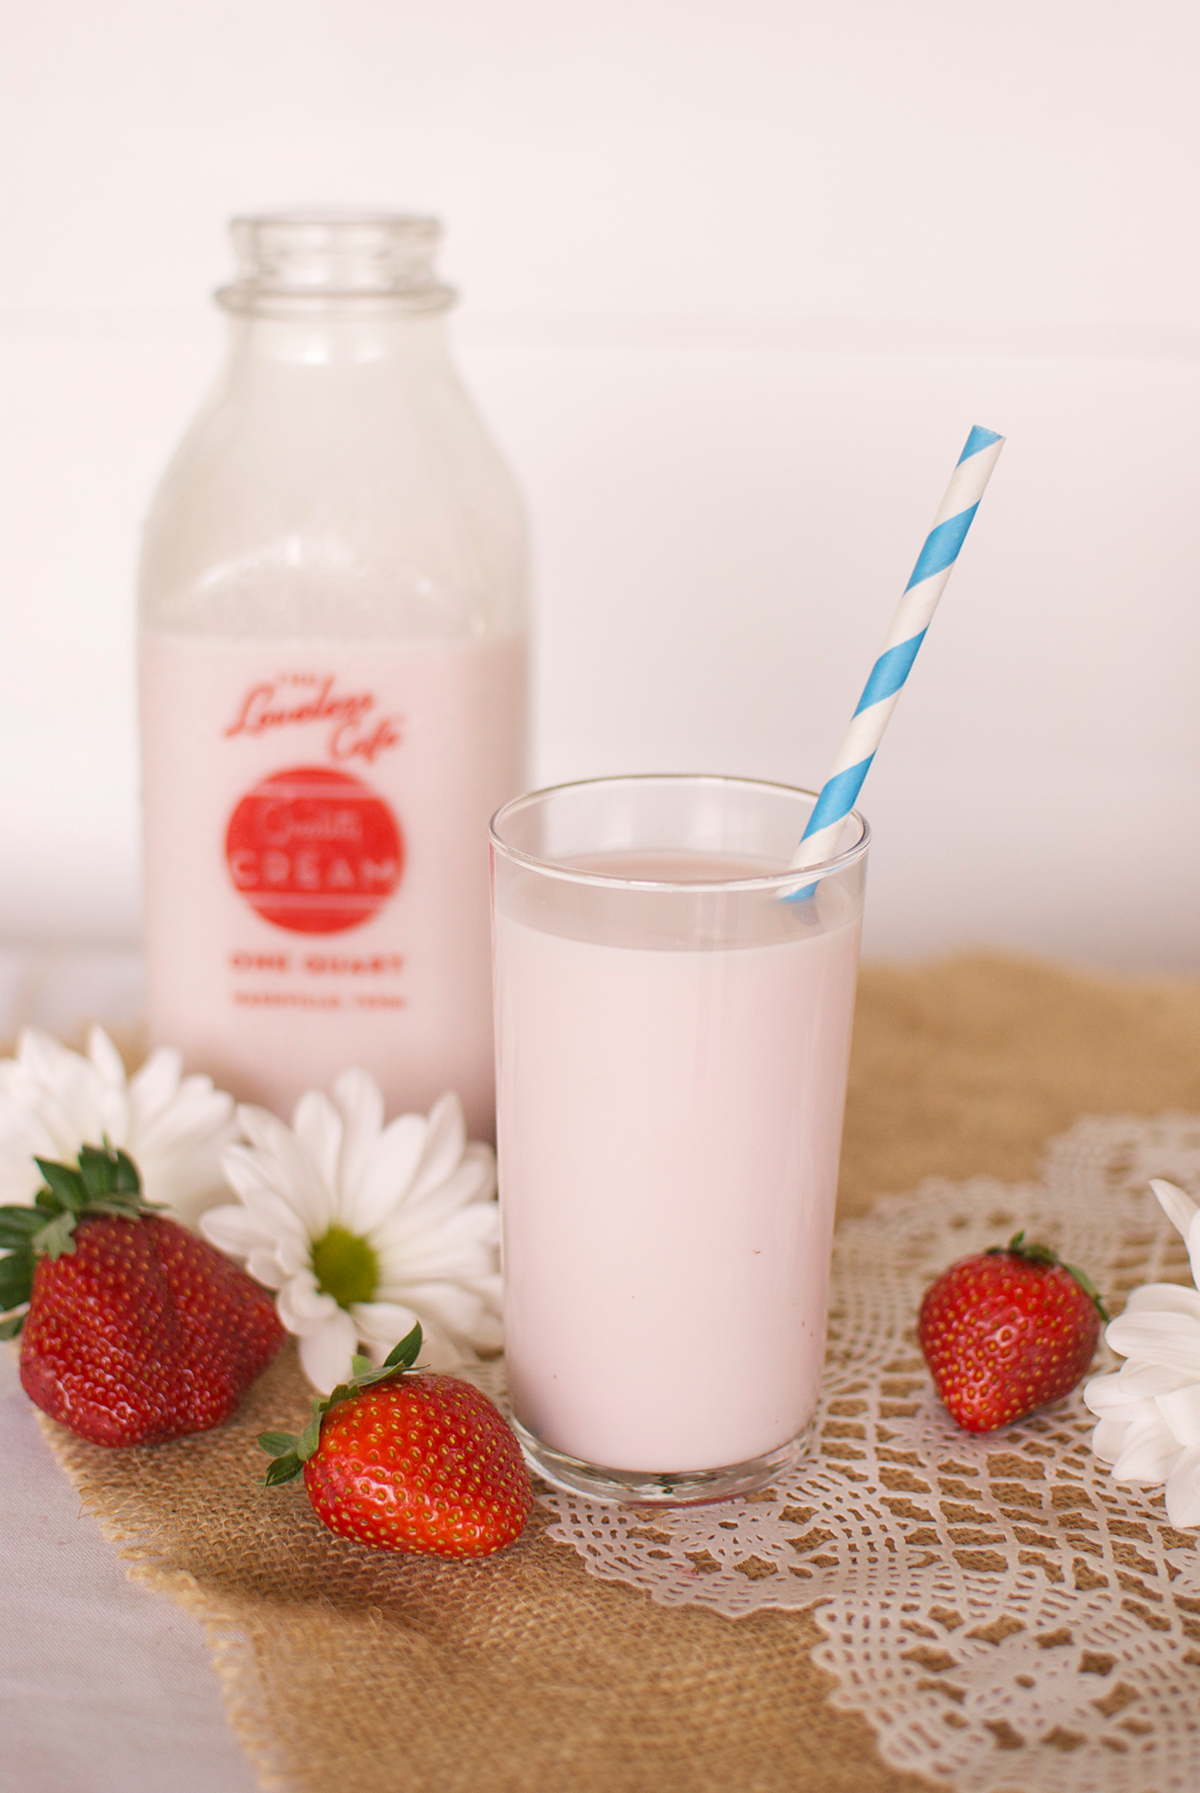 Strawberry Milk recipe from the Loveless Cafe